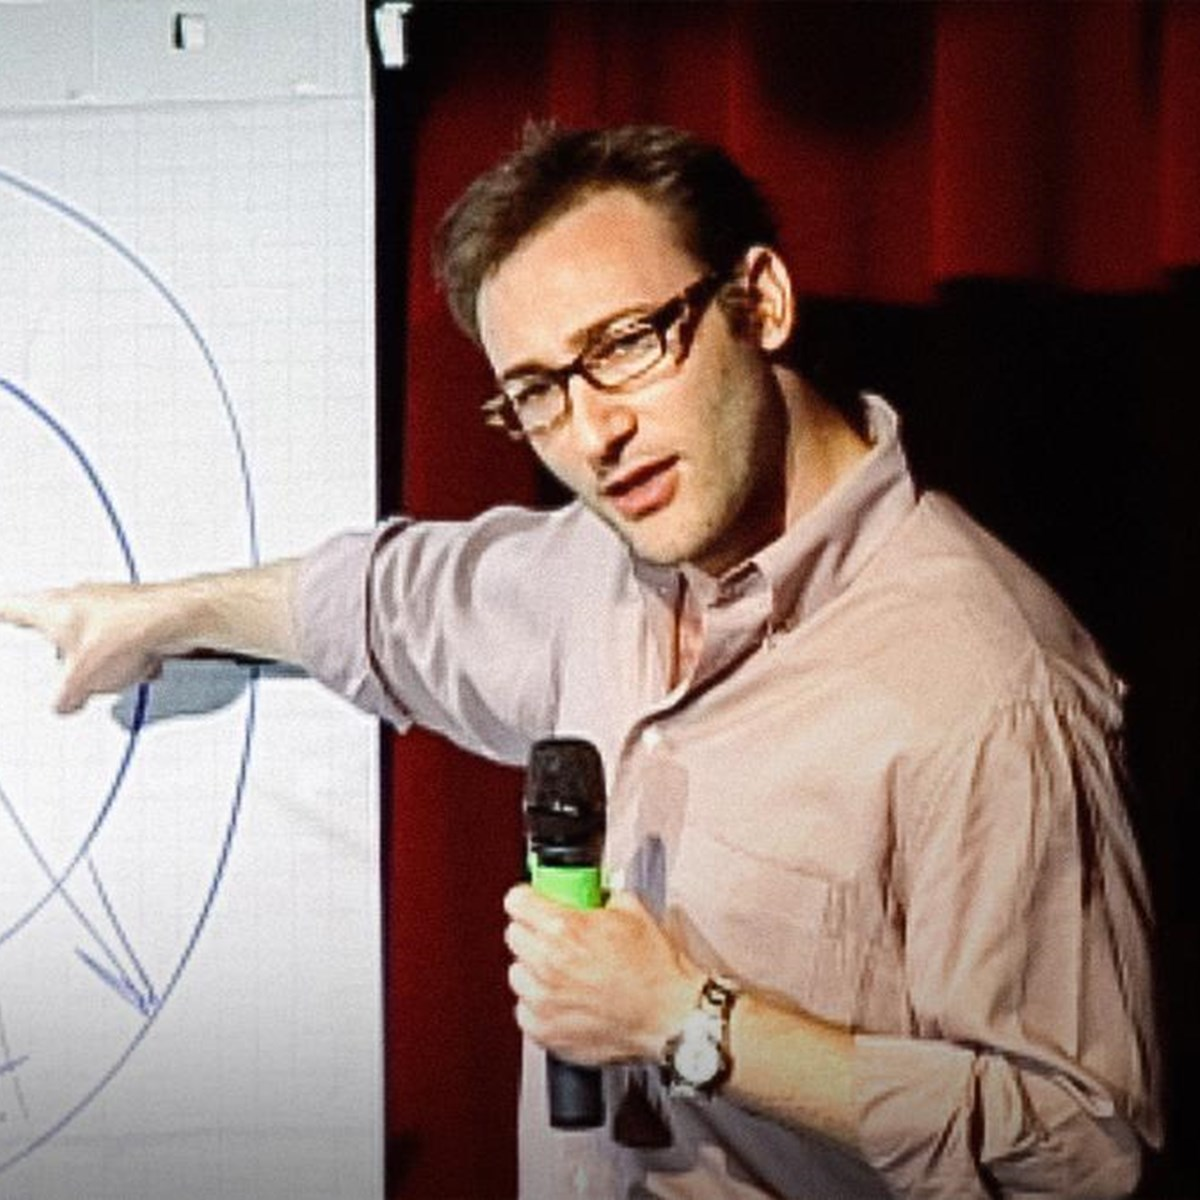 Simon Sinek in his TED Talk on How Great Leaders Inspire Change